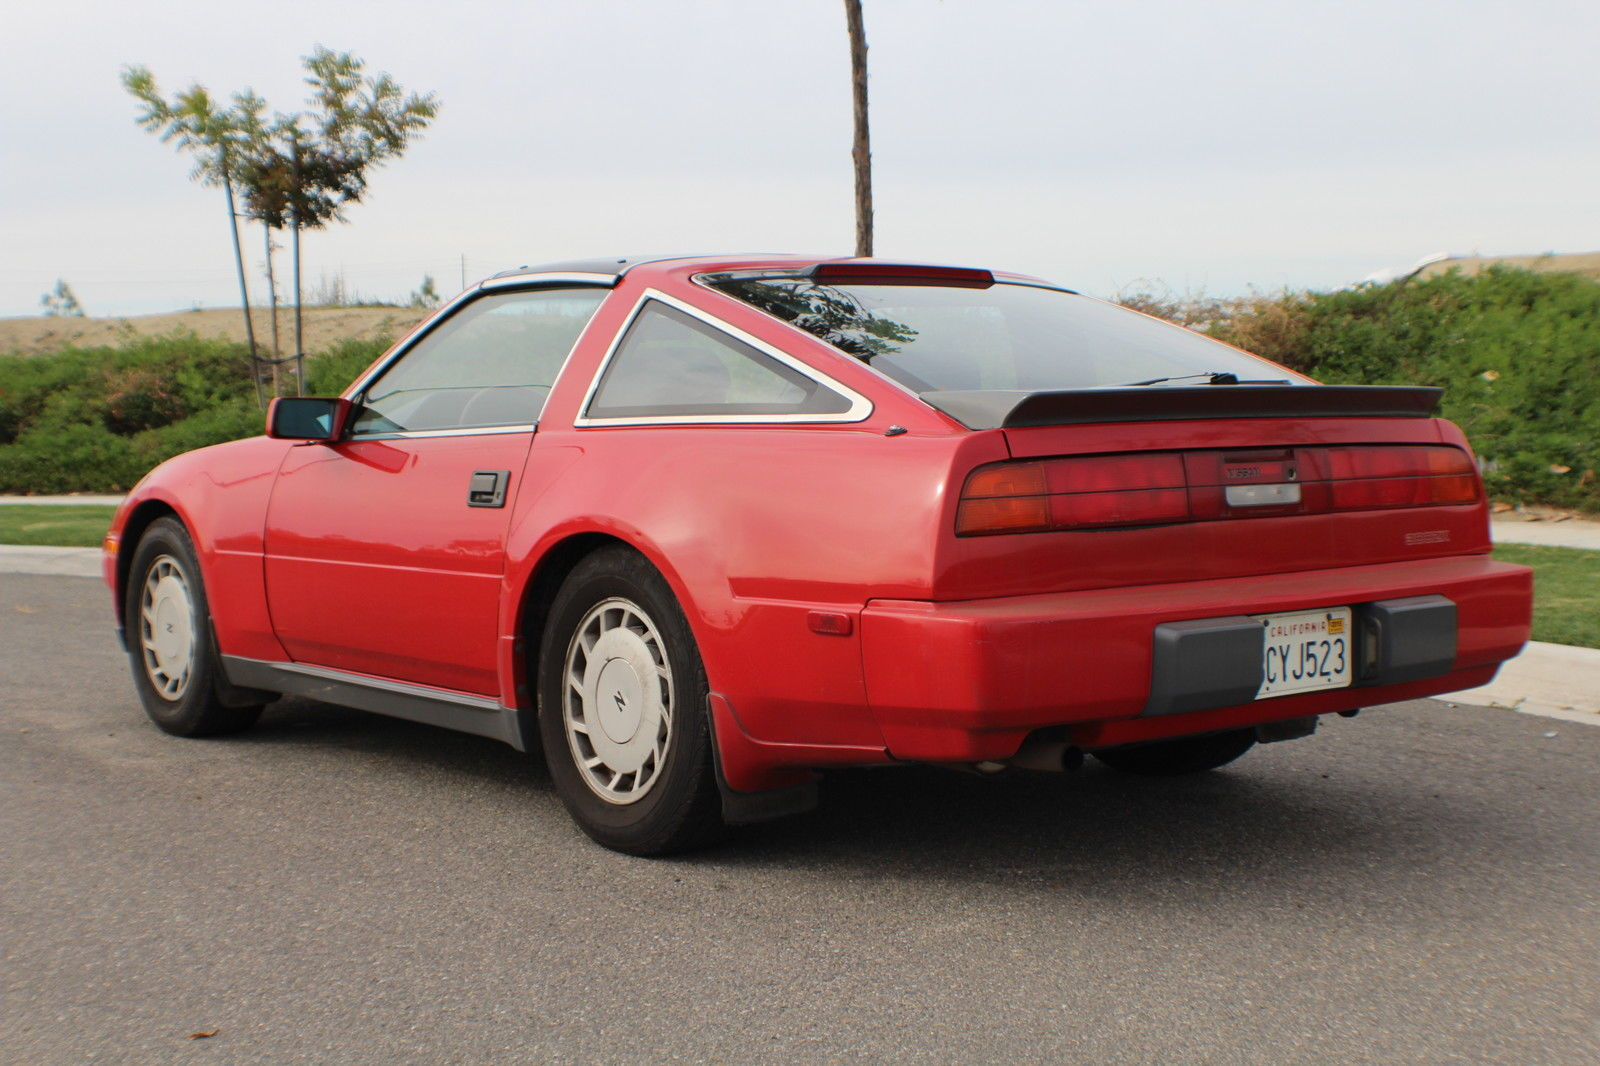 Nissan coupe photo - 5